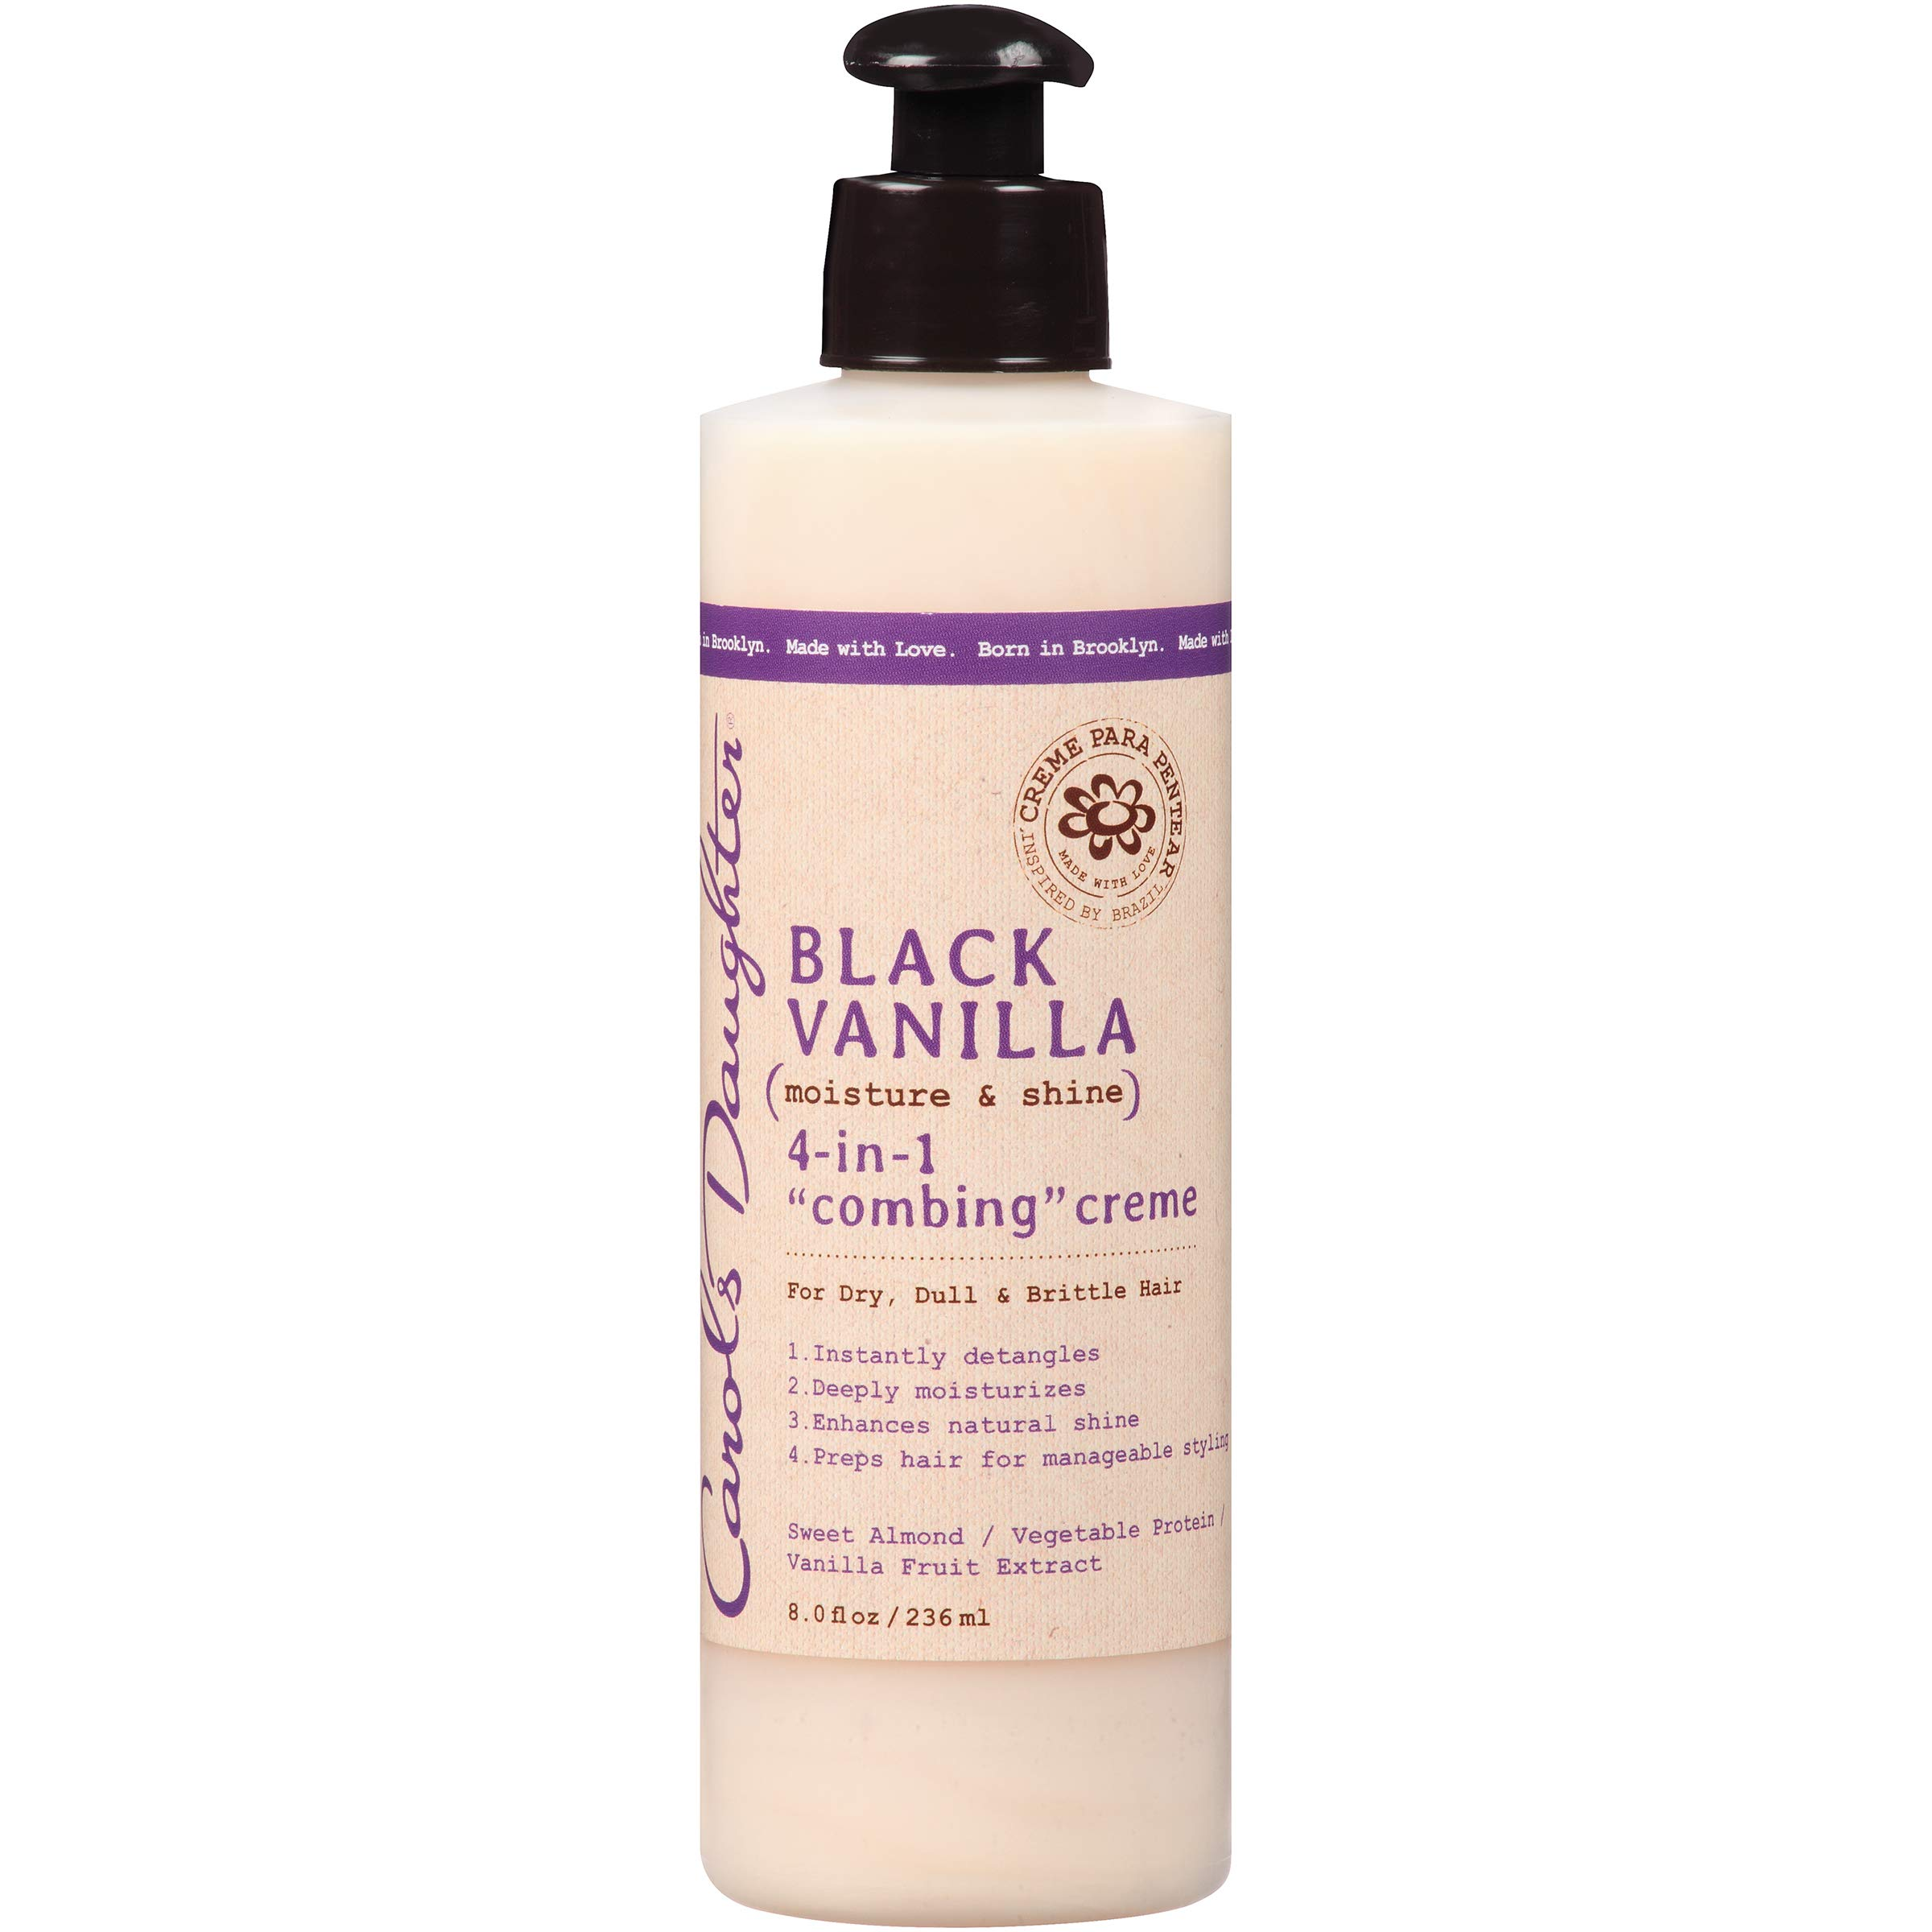 Carol's Daughter Black Vanilla Moisture & Shine 4 in 1 Combing Creme for Dry Hair and Dull Hair, with Sweet Almond Oil and Vanilla Fruit Extract, Hair Detangler, 8 fl oz